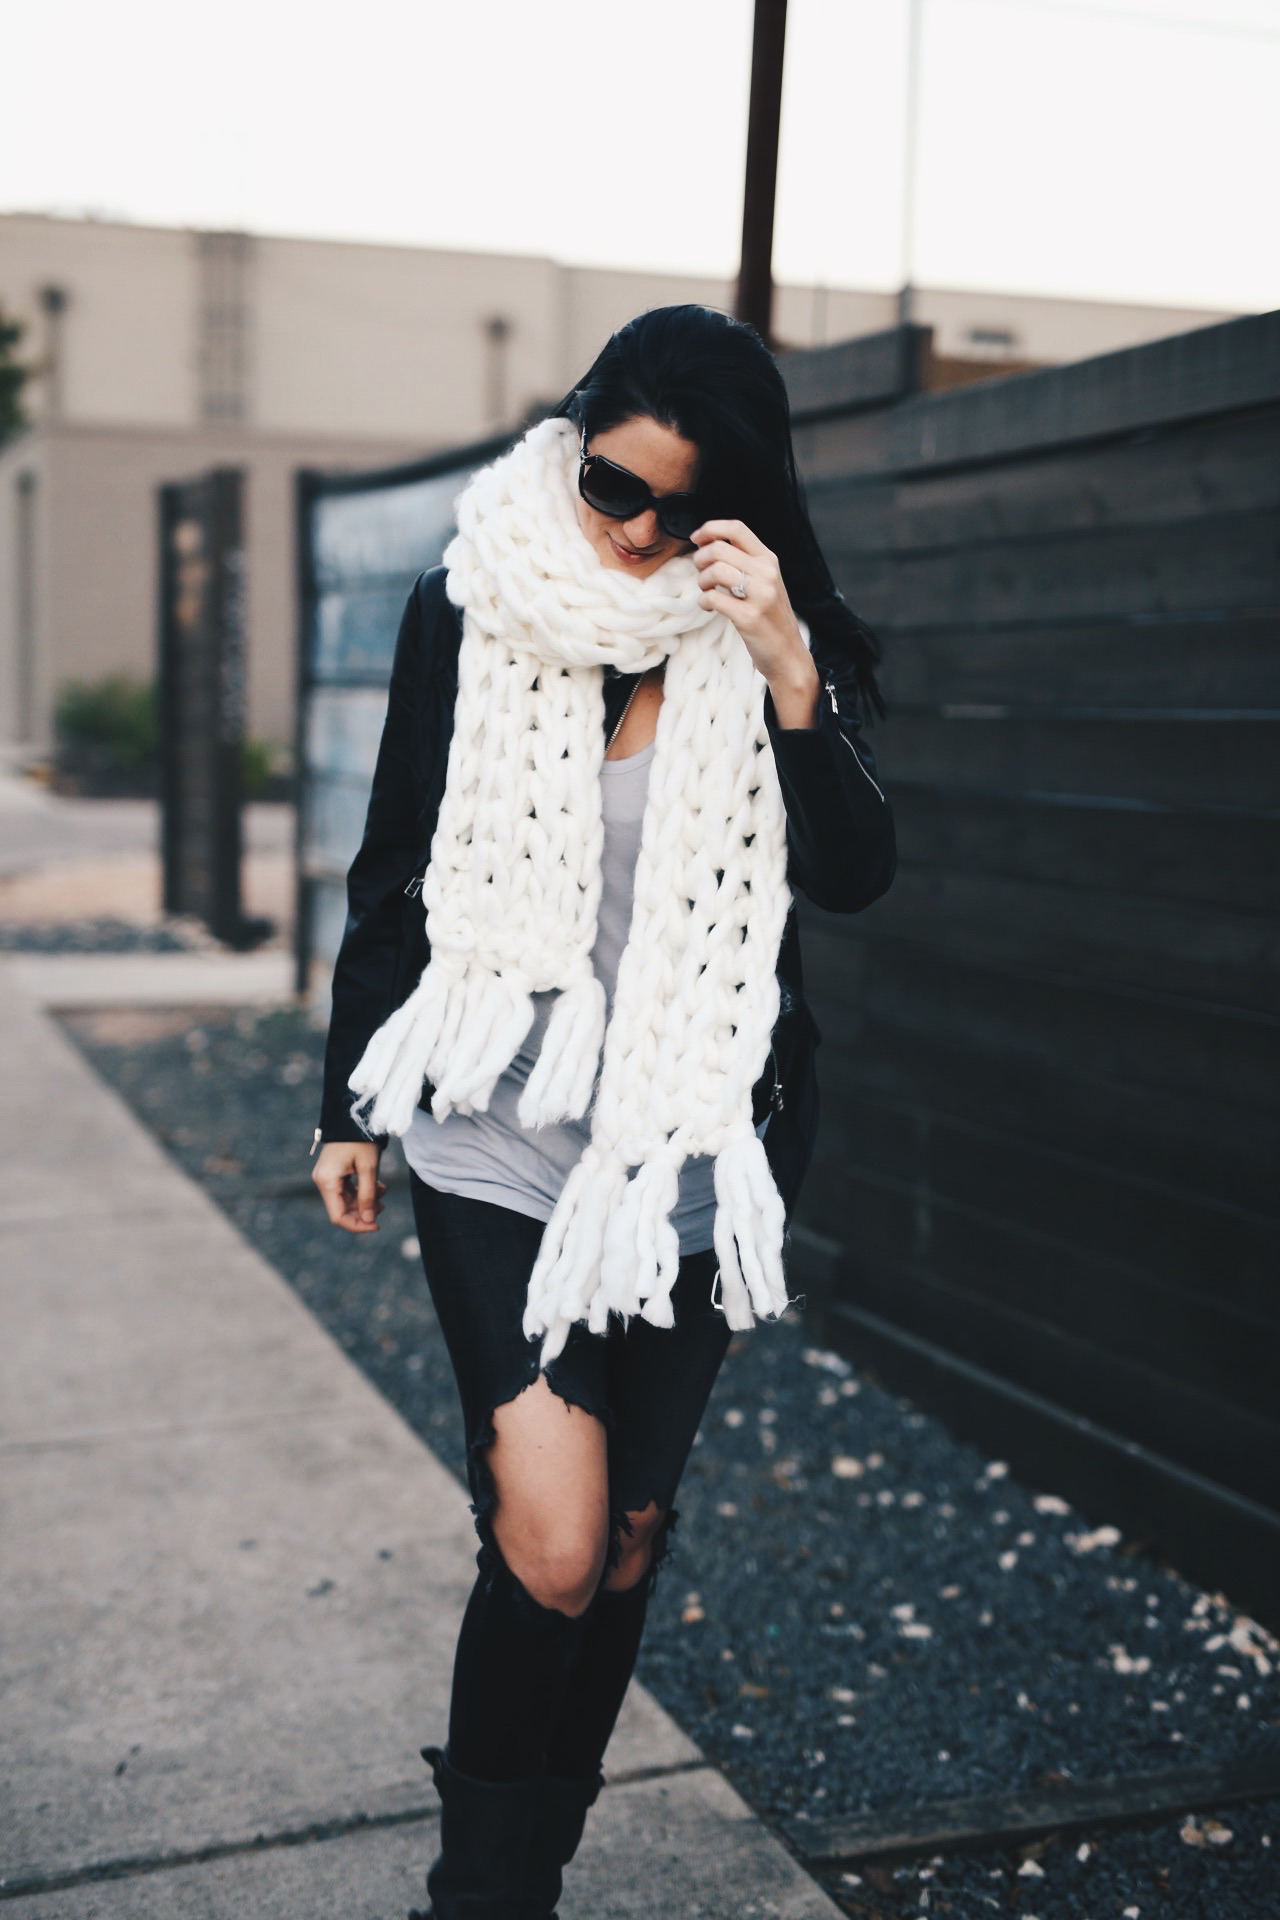 White Chunky Knit Scarf | how to style a chunky knit scarf | how to wear a chunky knit scarf | chunky knit scarf style tips | fall scarves | scarves for fall and winter | fall fashion tips | fall outfit ideas | fall style tips | what to wear for fall | cool weather fashion | fashion for fall | style tips for fall | outfit ideas for fall || Dressed to Kill  #chunkyscarf #knitscarf #scarvesforwomen